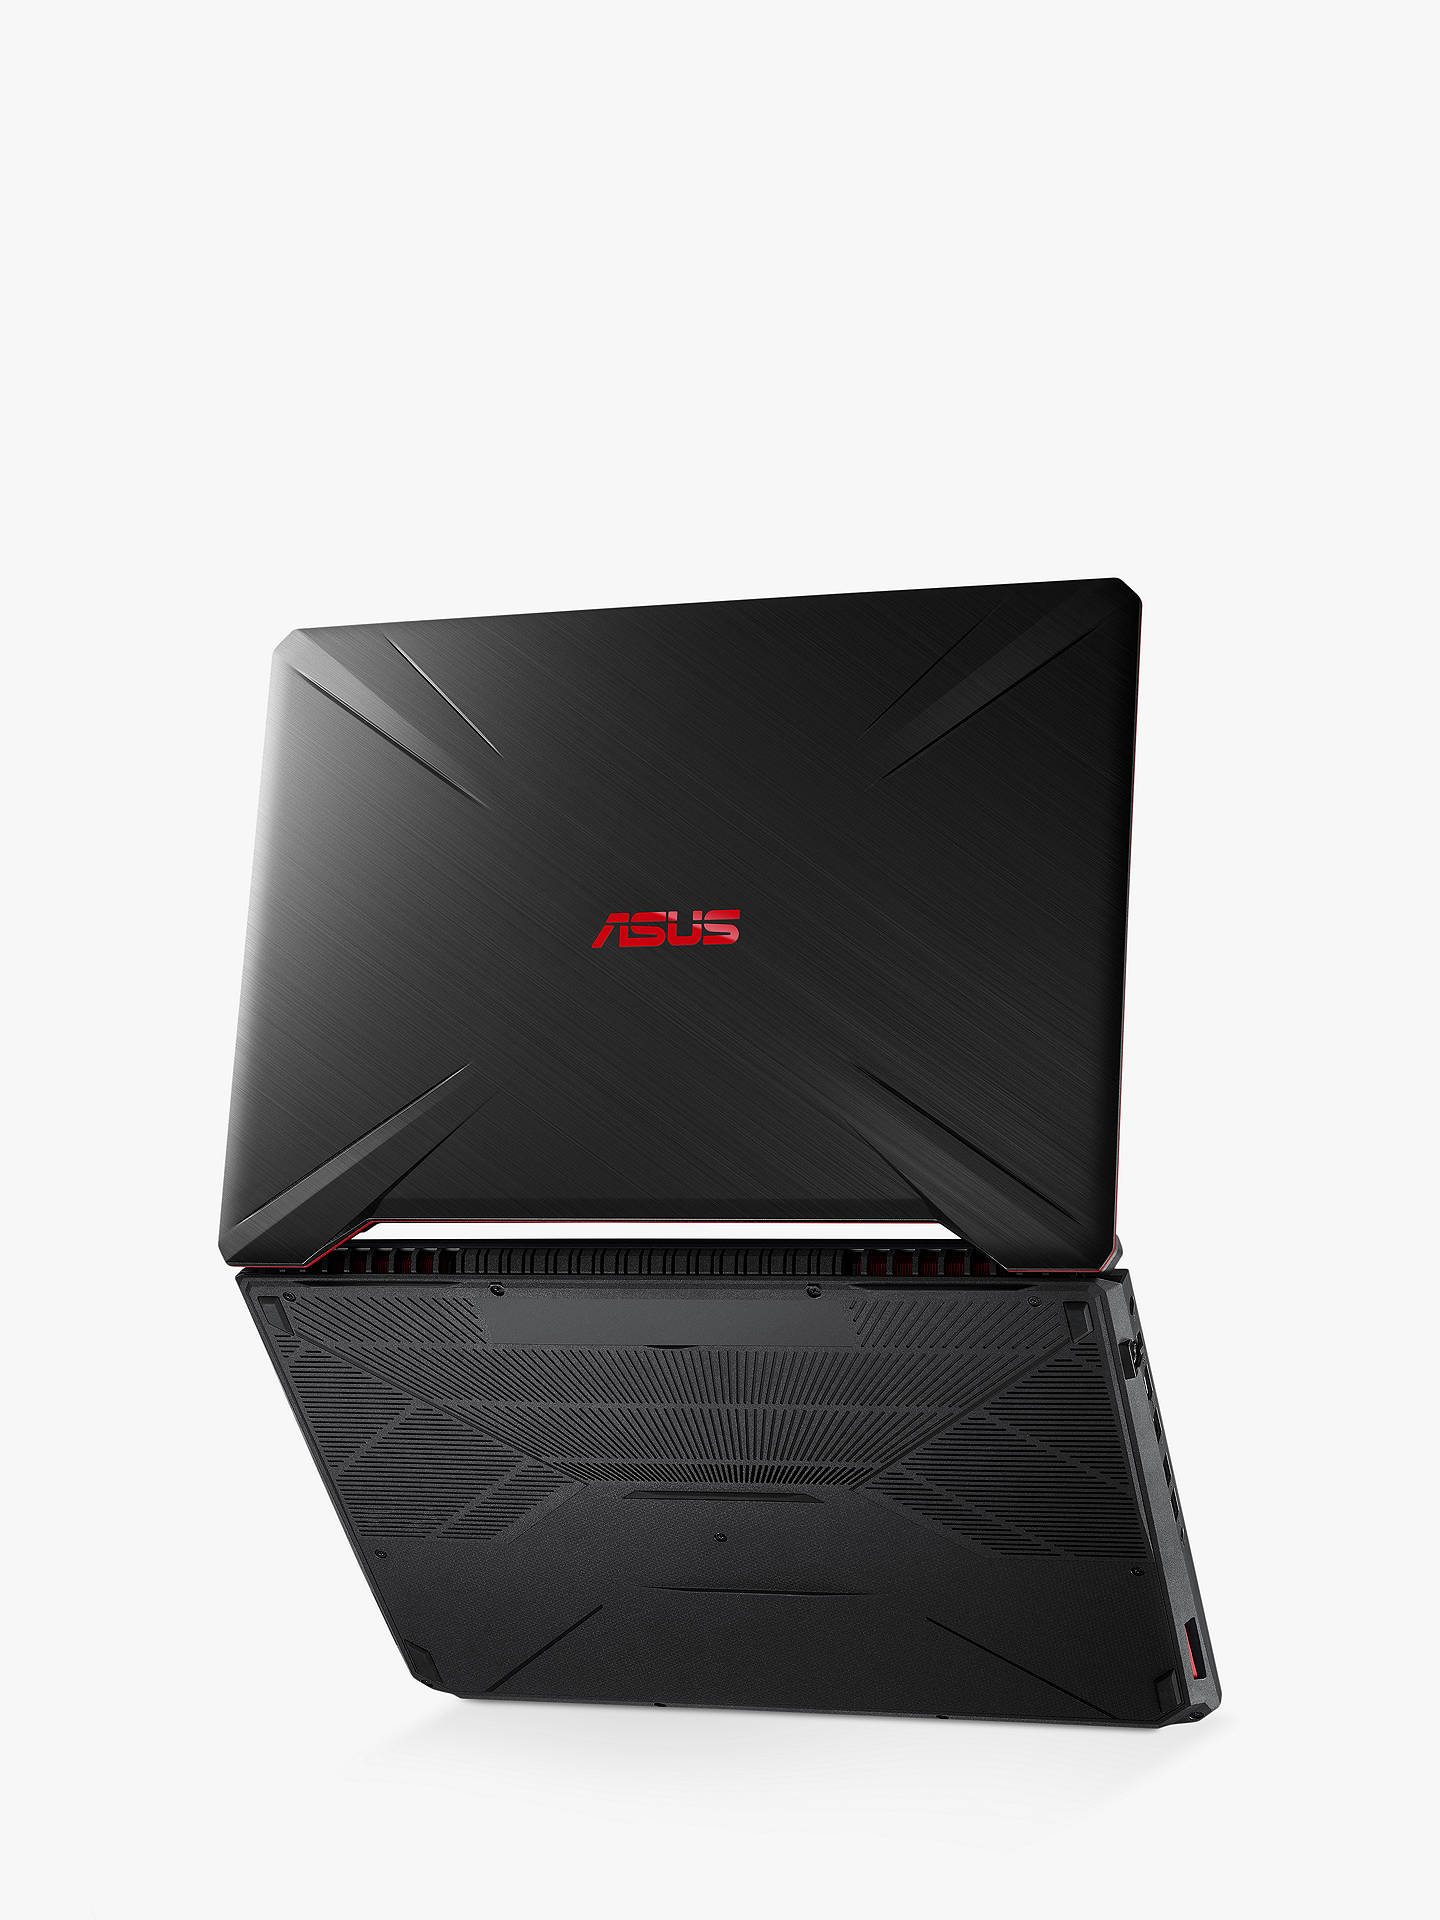 ASUS FX505 Laptop, AMD Ryzen R5 Processor, 8GB RAM, 1TB HDD + 256GB SSD,  Radeon RX 560, 15 6